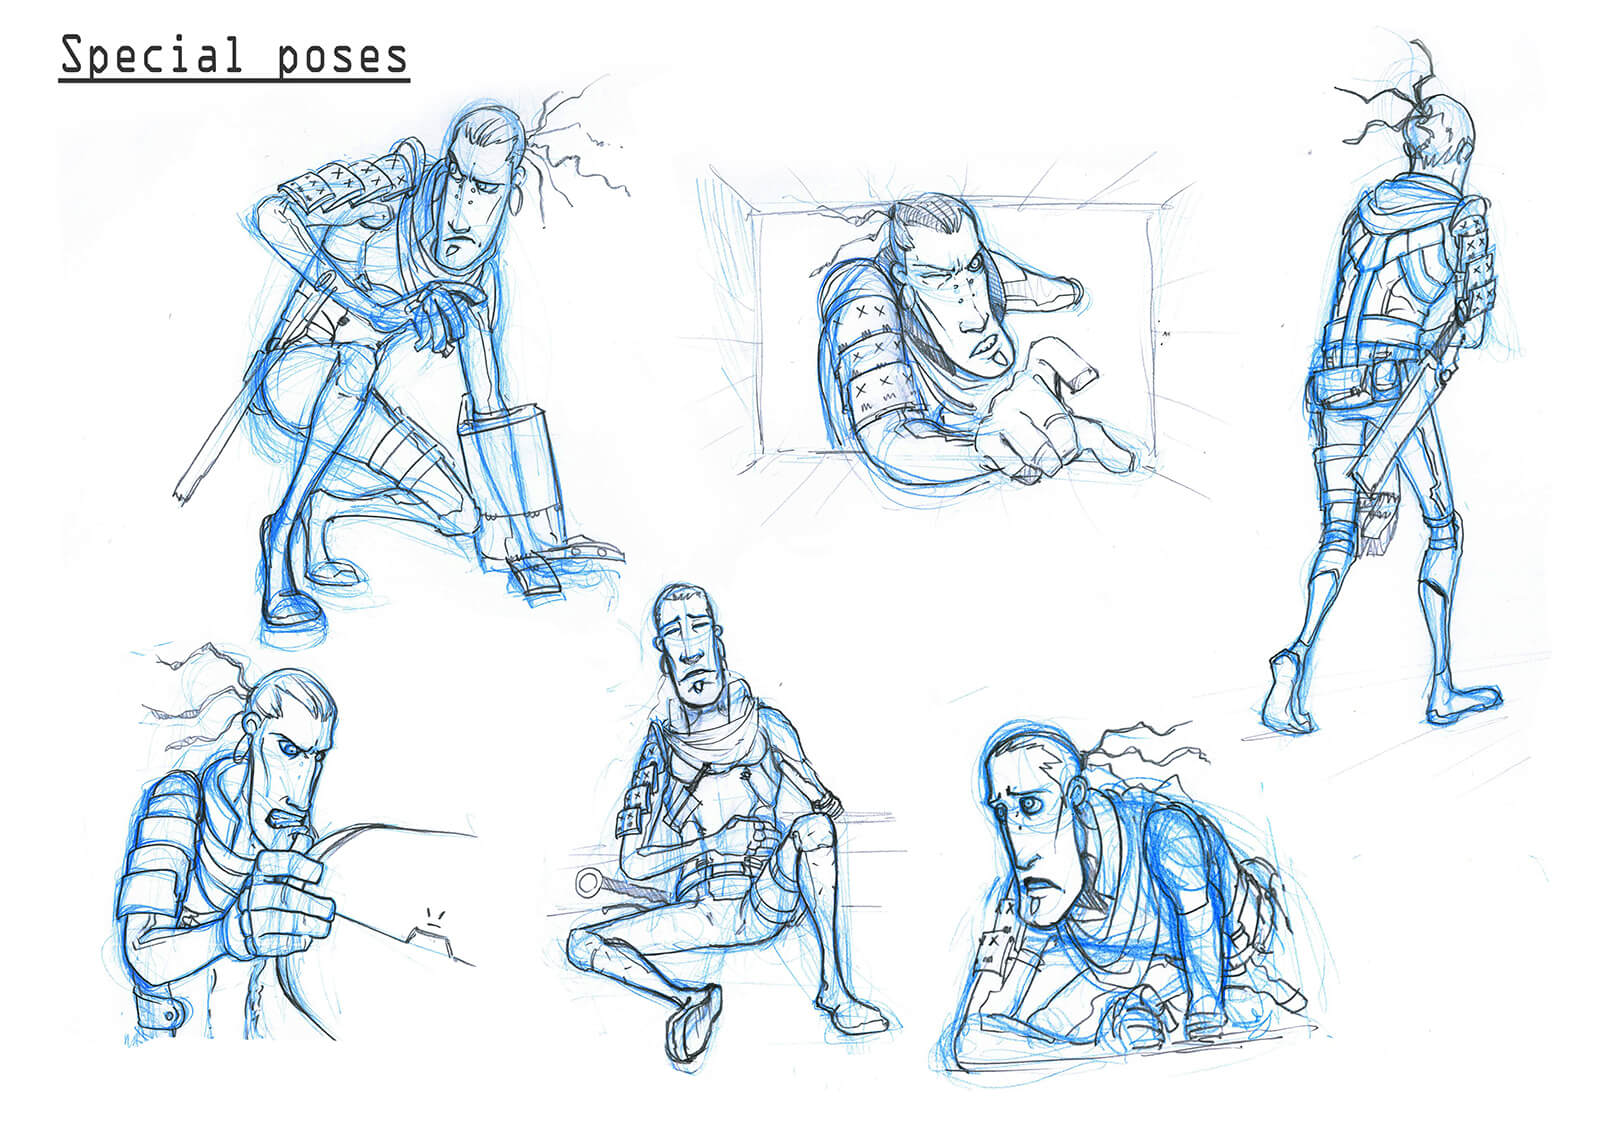 Blue and black sketches of a tall, thin man in body armor crouching, crawling, and sitting, among other poses